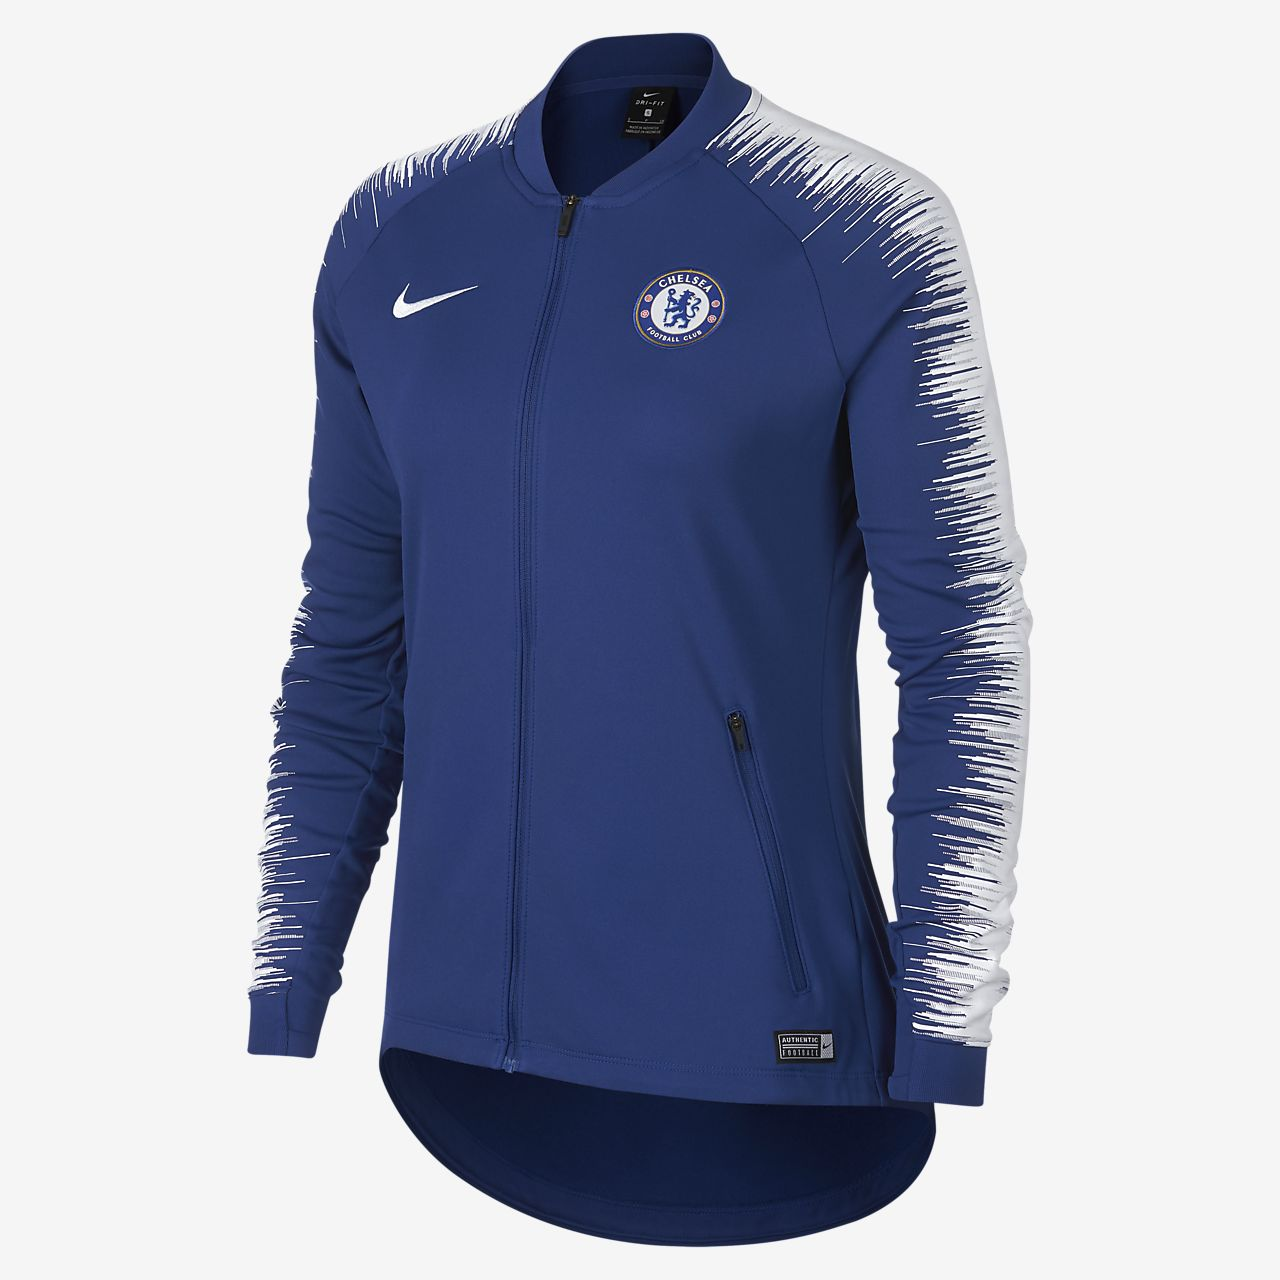 25172d956 Chelsea FC Anthem Women's Football Jacket. Nike.com ZA